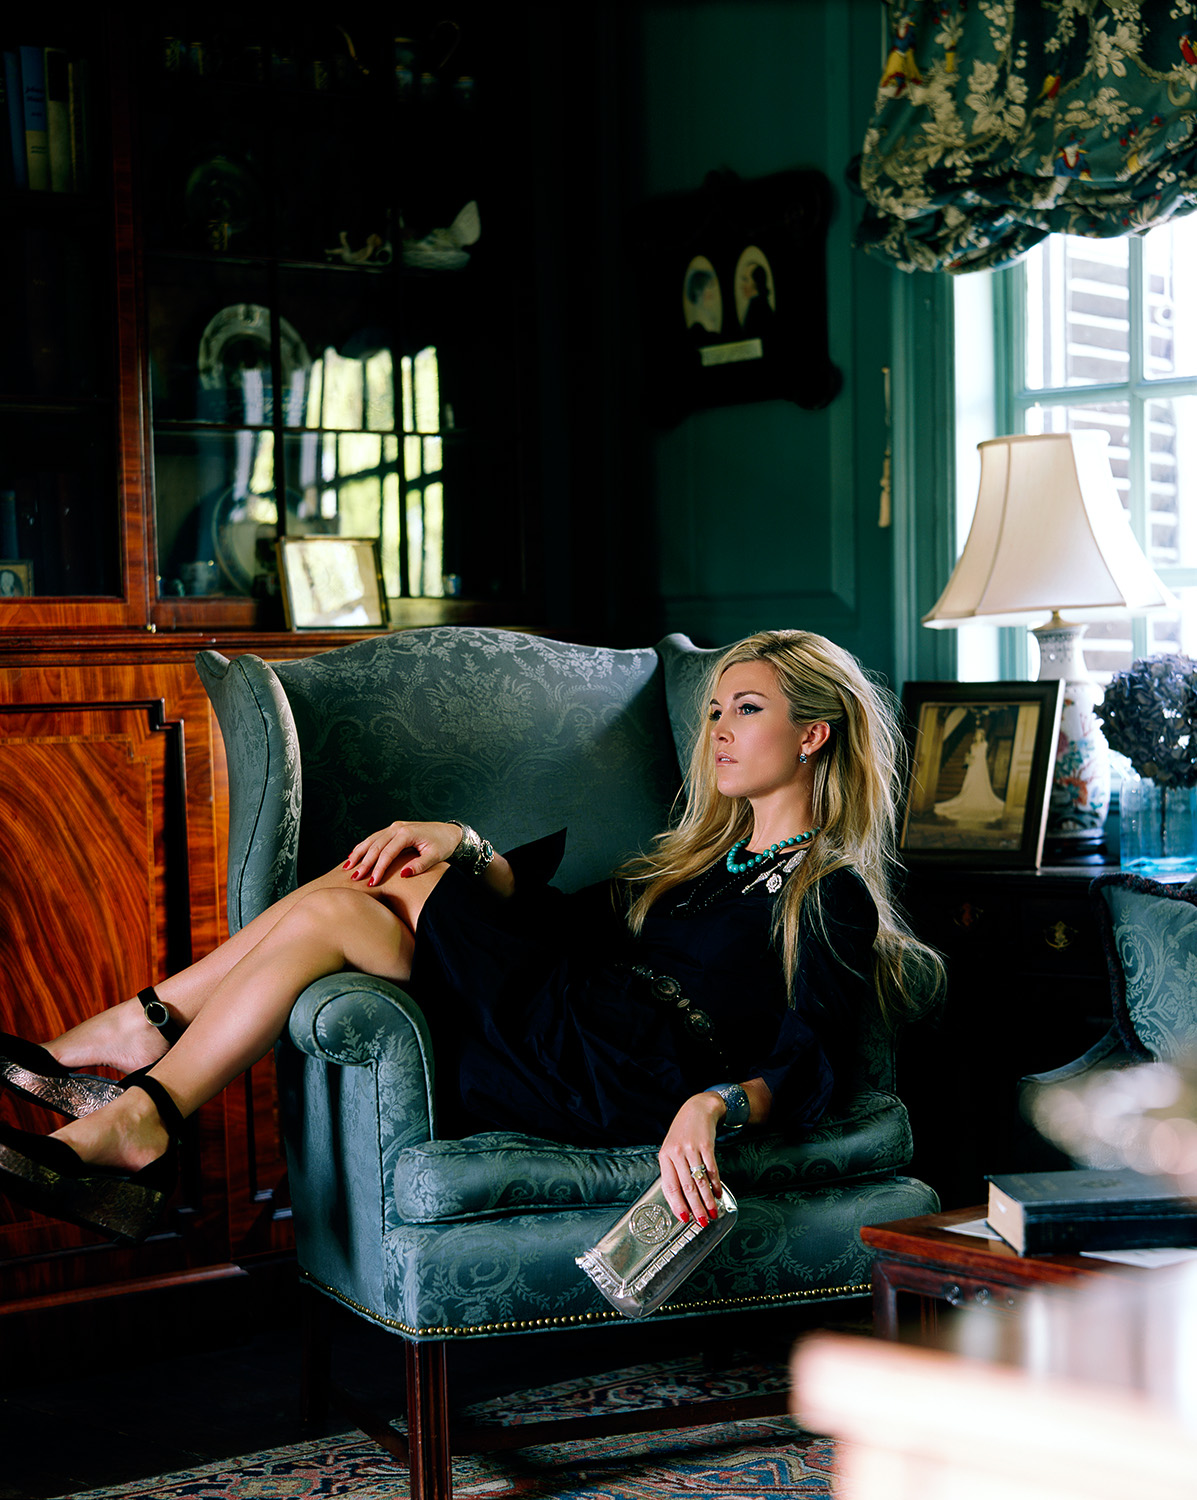 Designer, Socialite and Lady about Town- Ms. Tinsley Mortimer